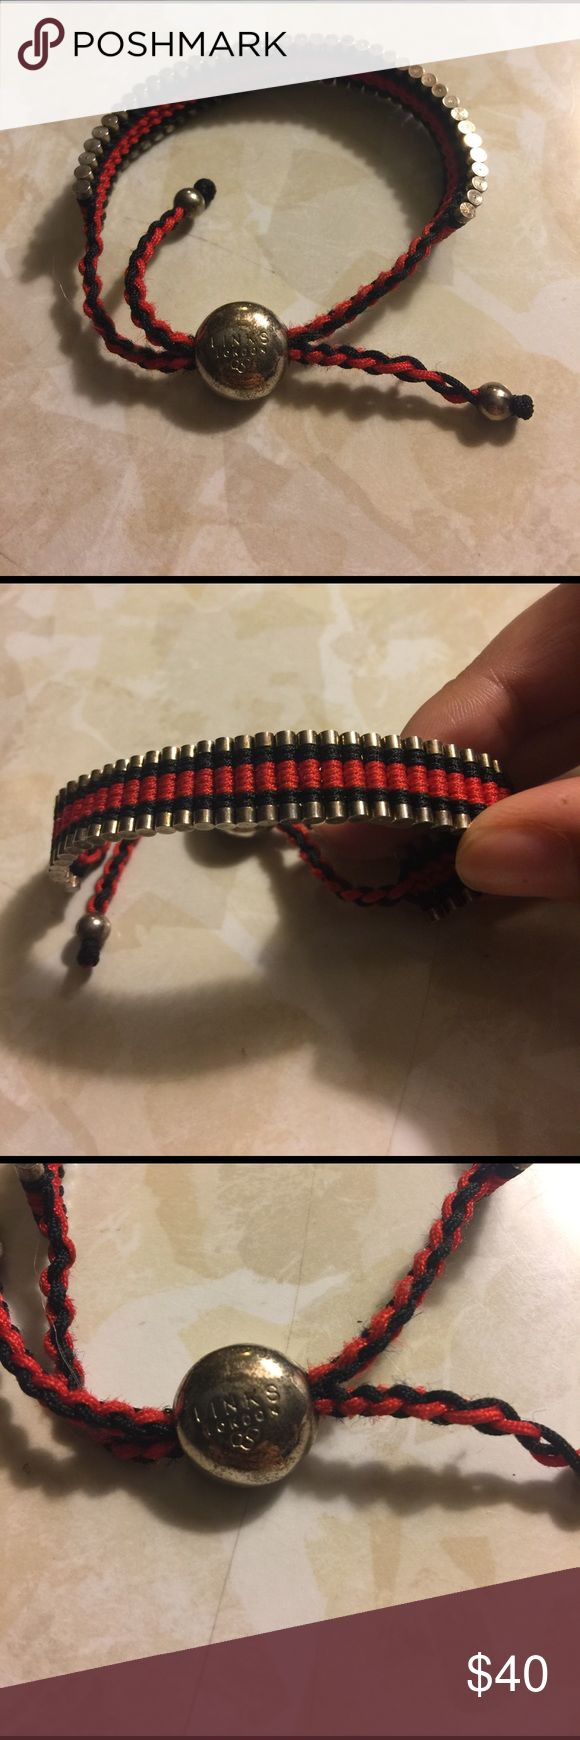 Links London bracelet Red and black bracelet. Has some fraying on the fabric and has some scratching on the fastener as you can see in the pictures. Other than that in good condition. links Jewelry Bracelets